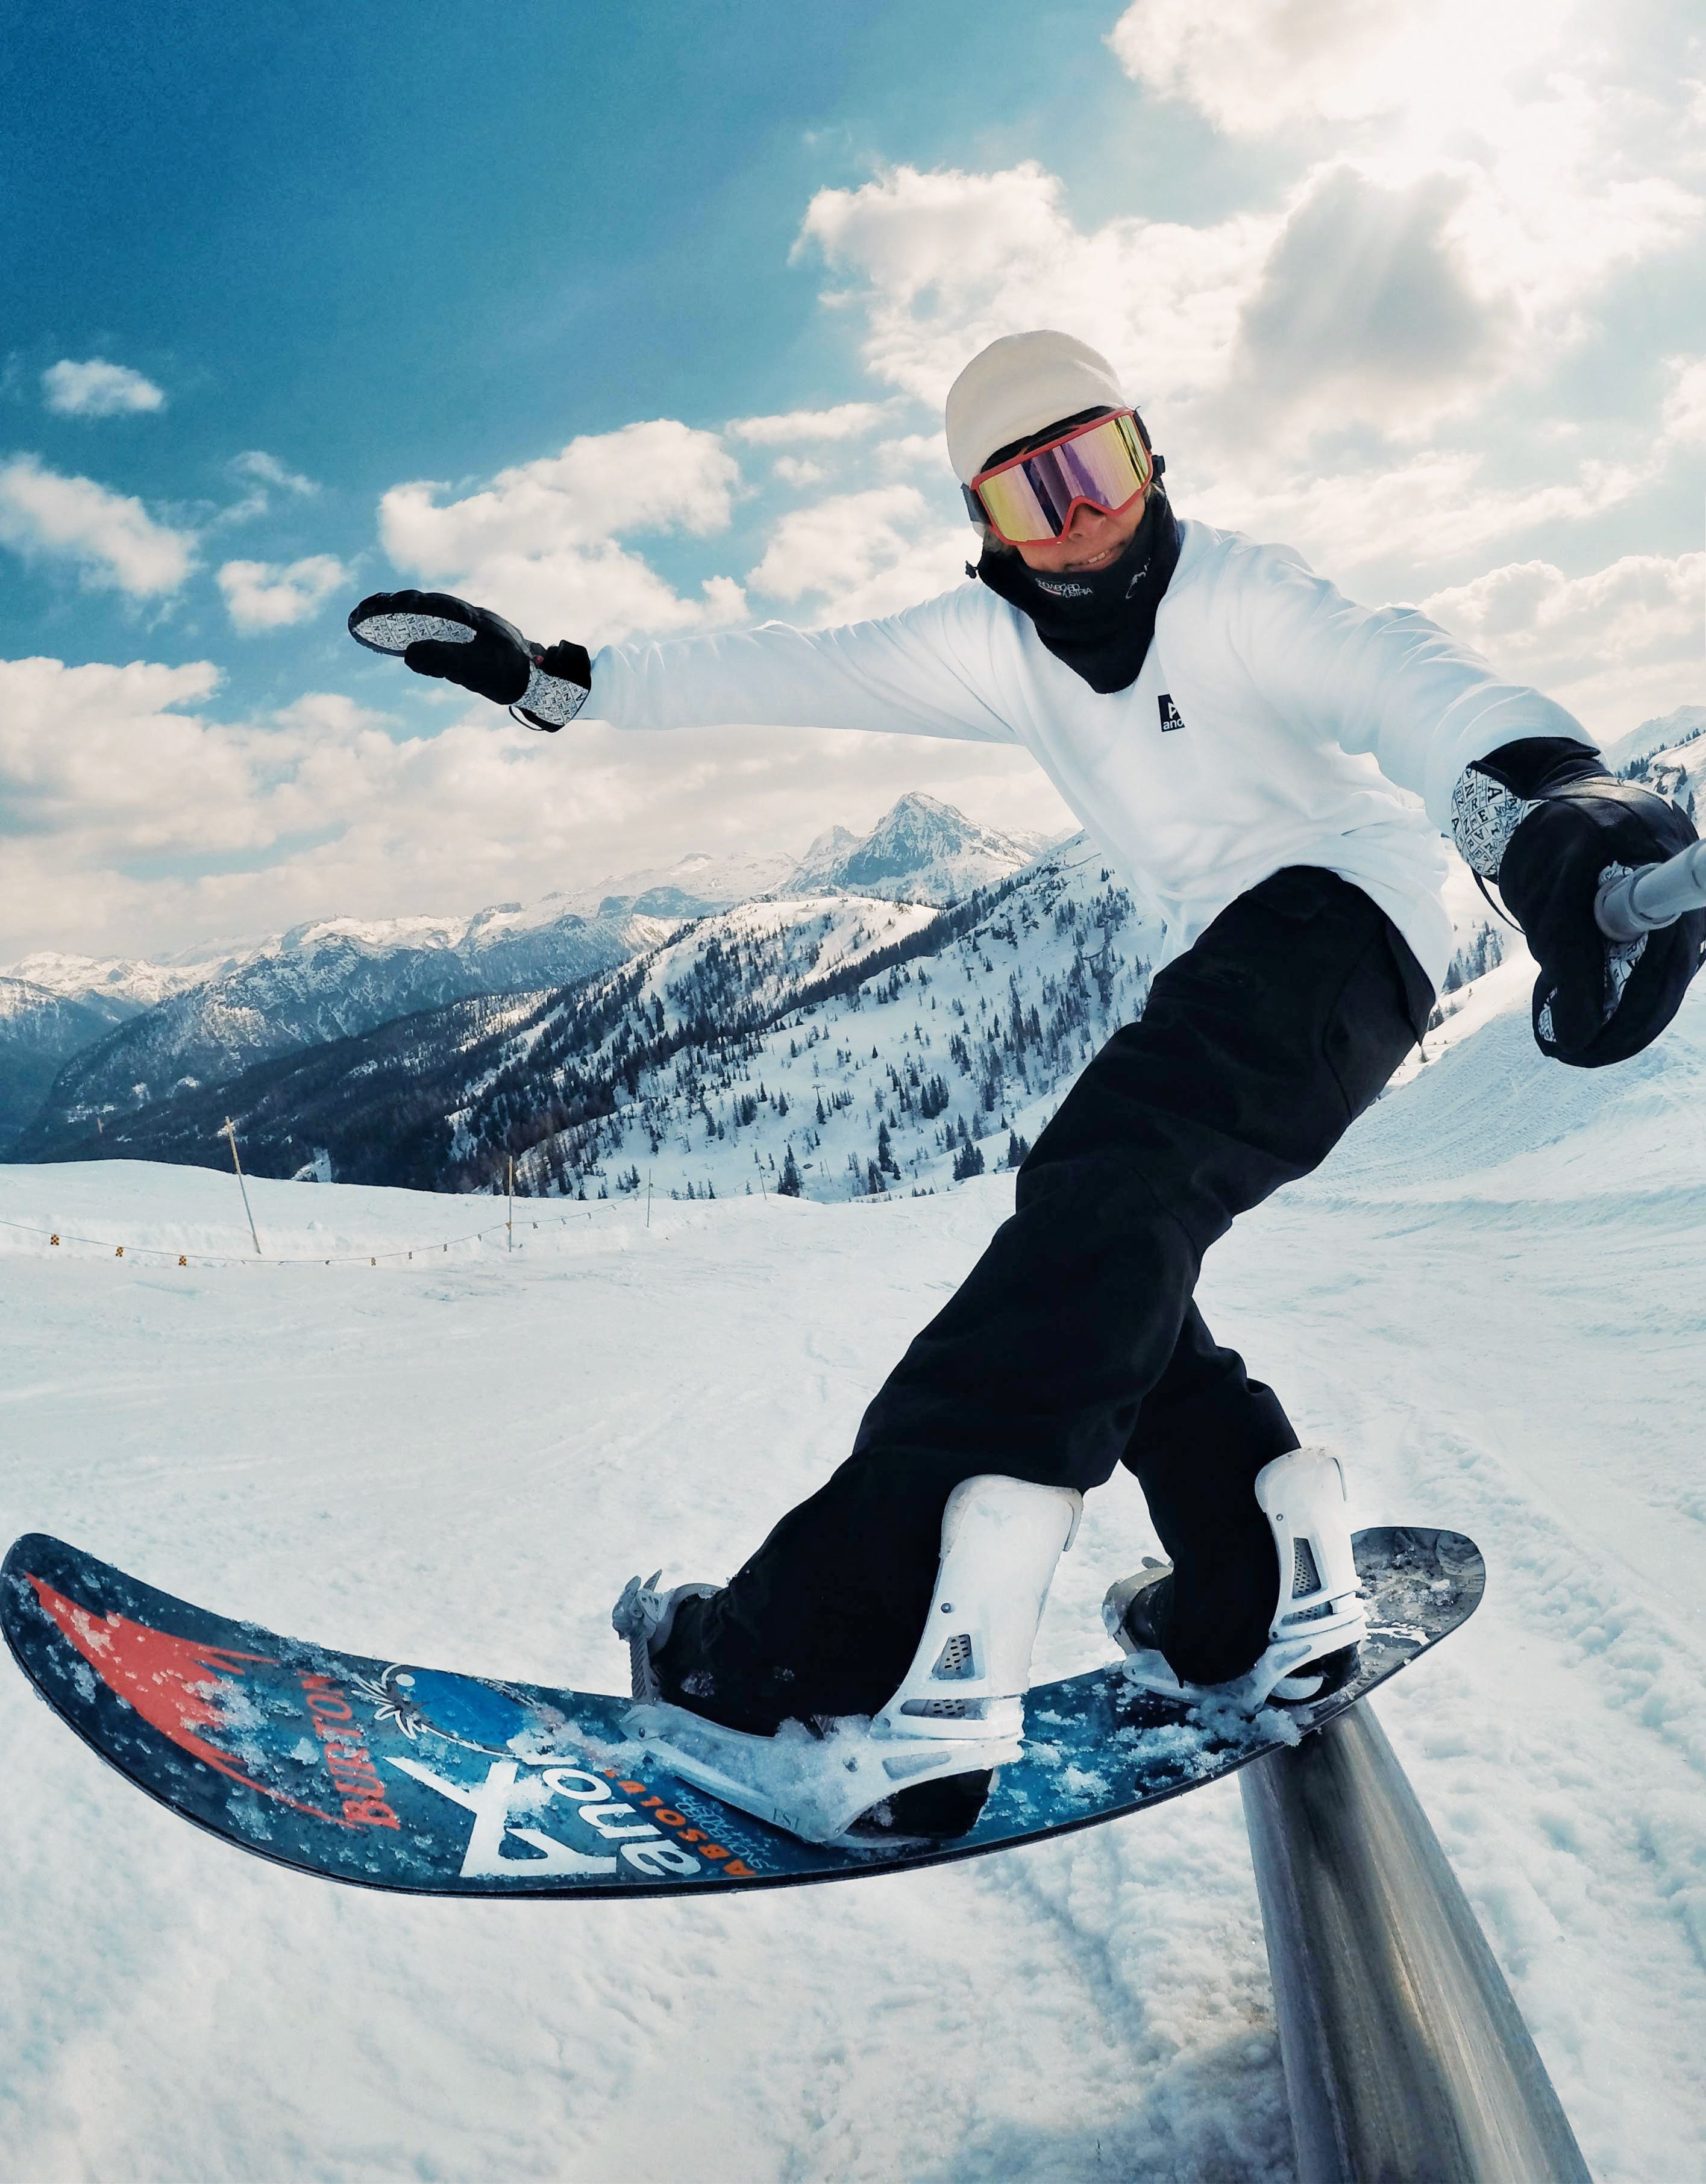 Pin By Ashley Coulter On Powder Perfection Snowboard Snowboarding Skiing